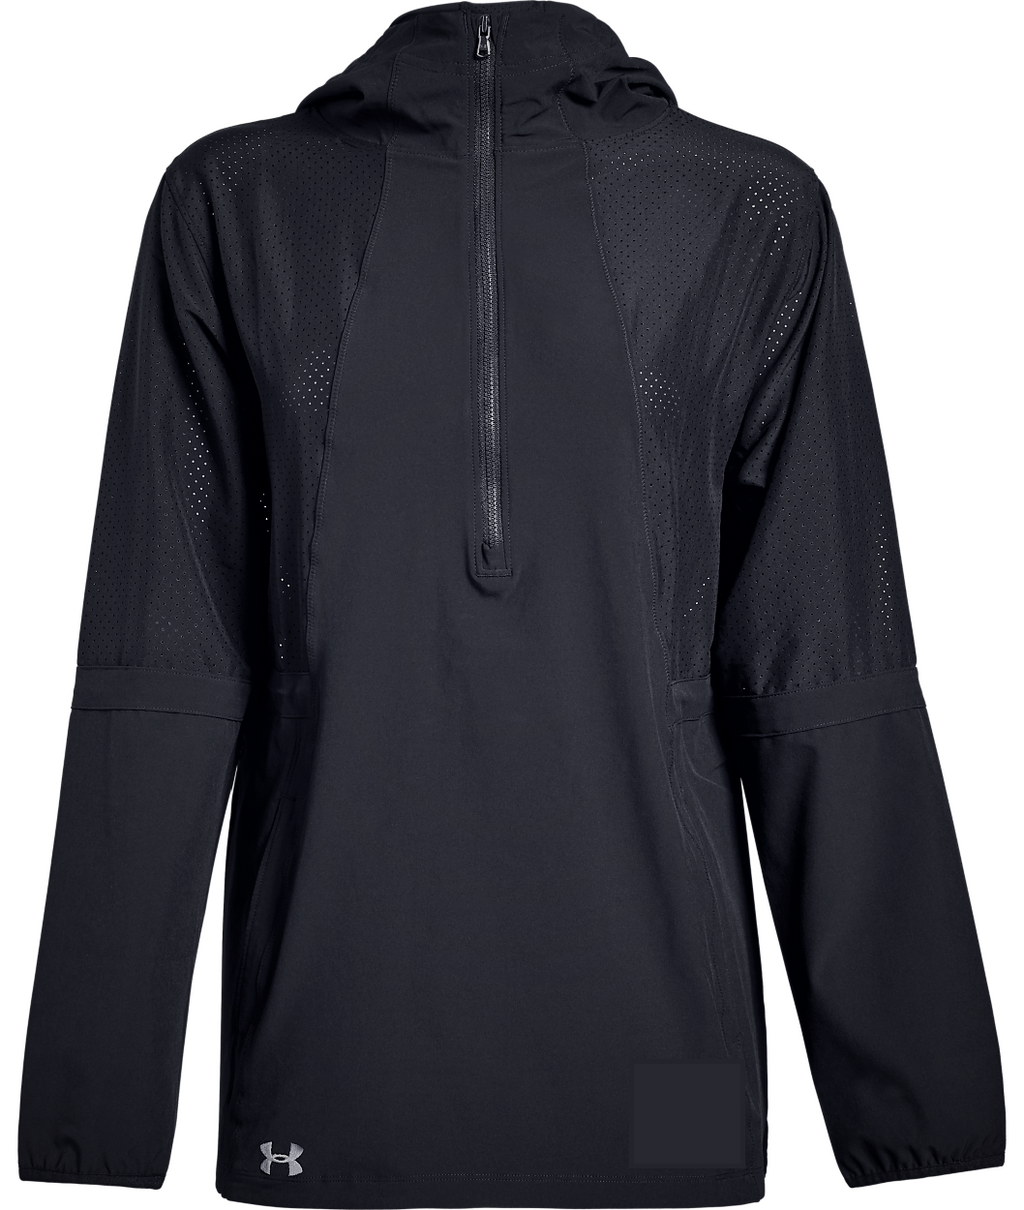 Squad Woven 1/2 Zip Hooded Women's Jacket - Black